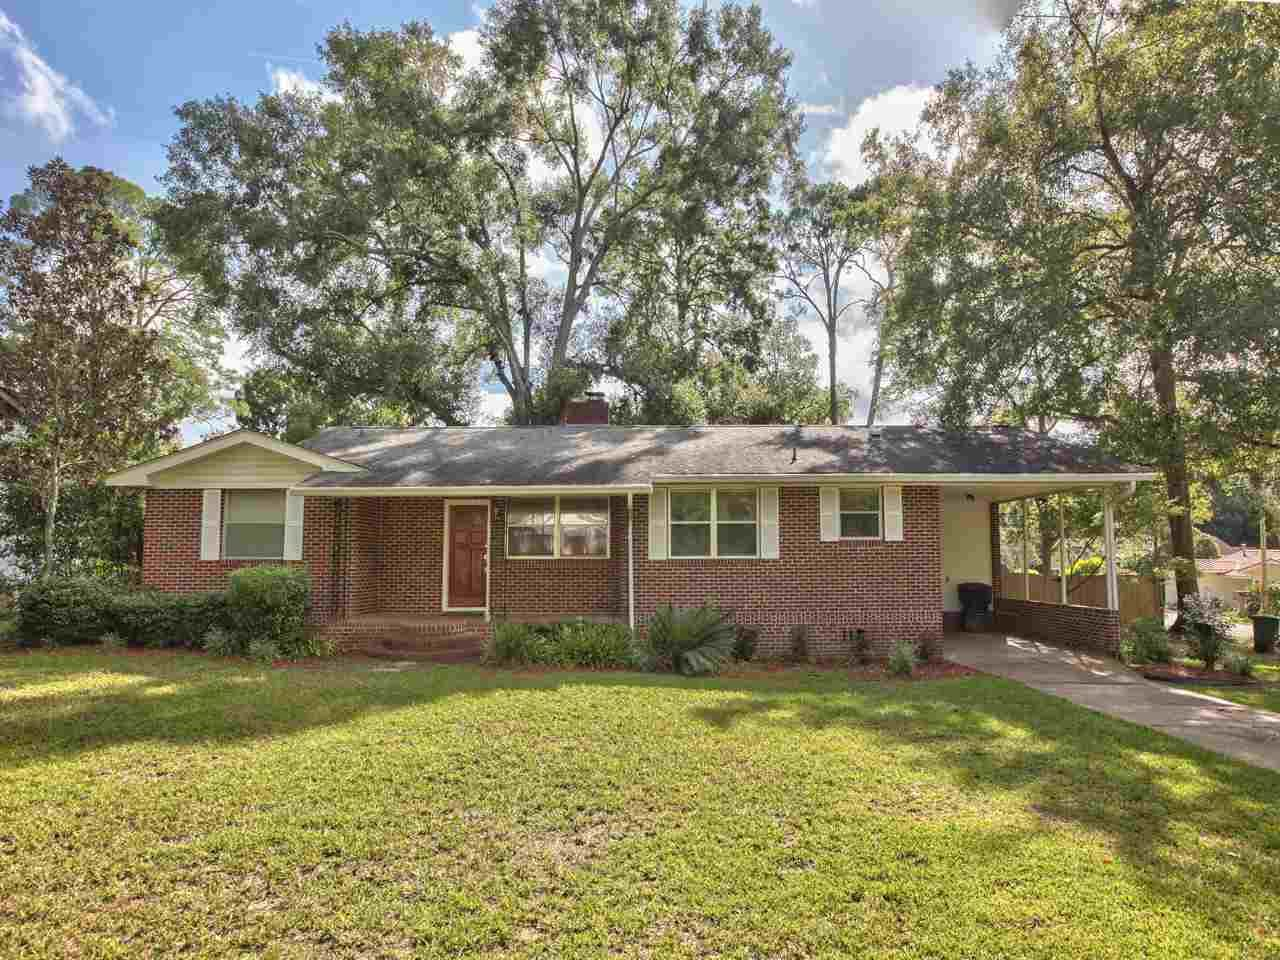 Photo of 1703 Monticello Drive, TALLAHASSEE, FL 32303 (MLS # 323480)